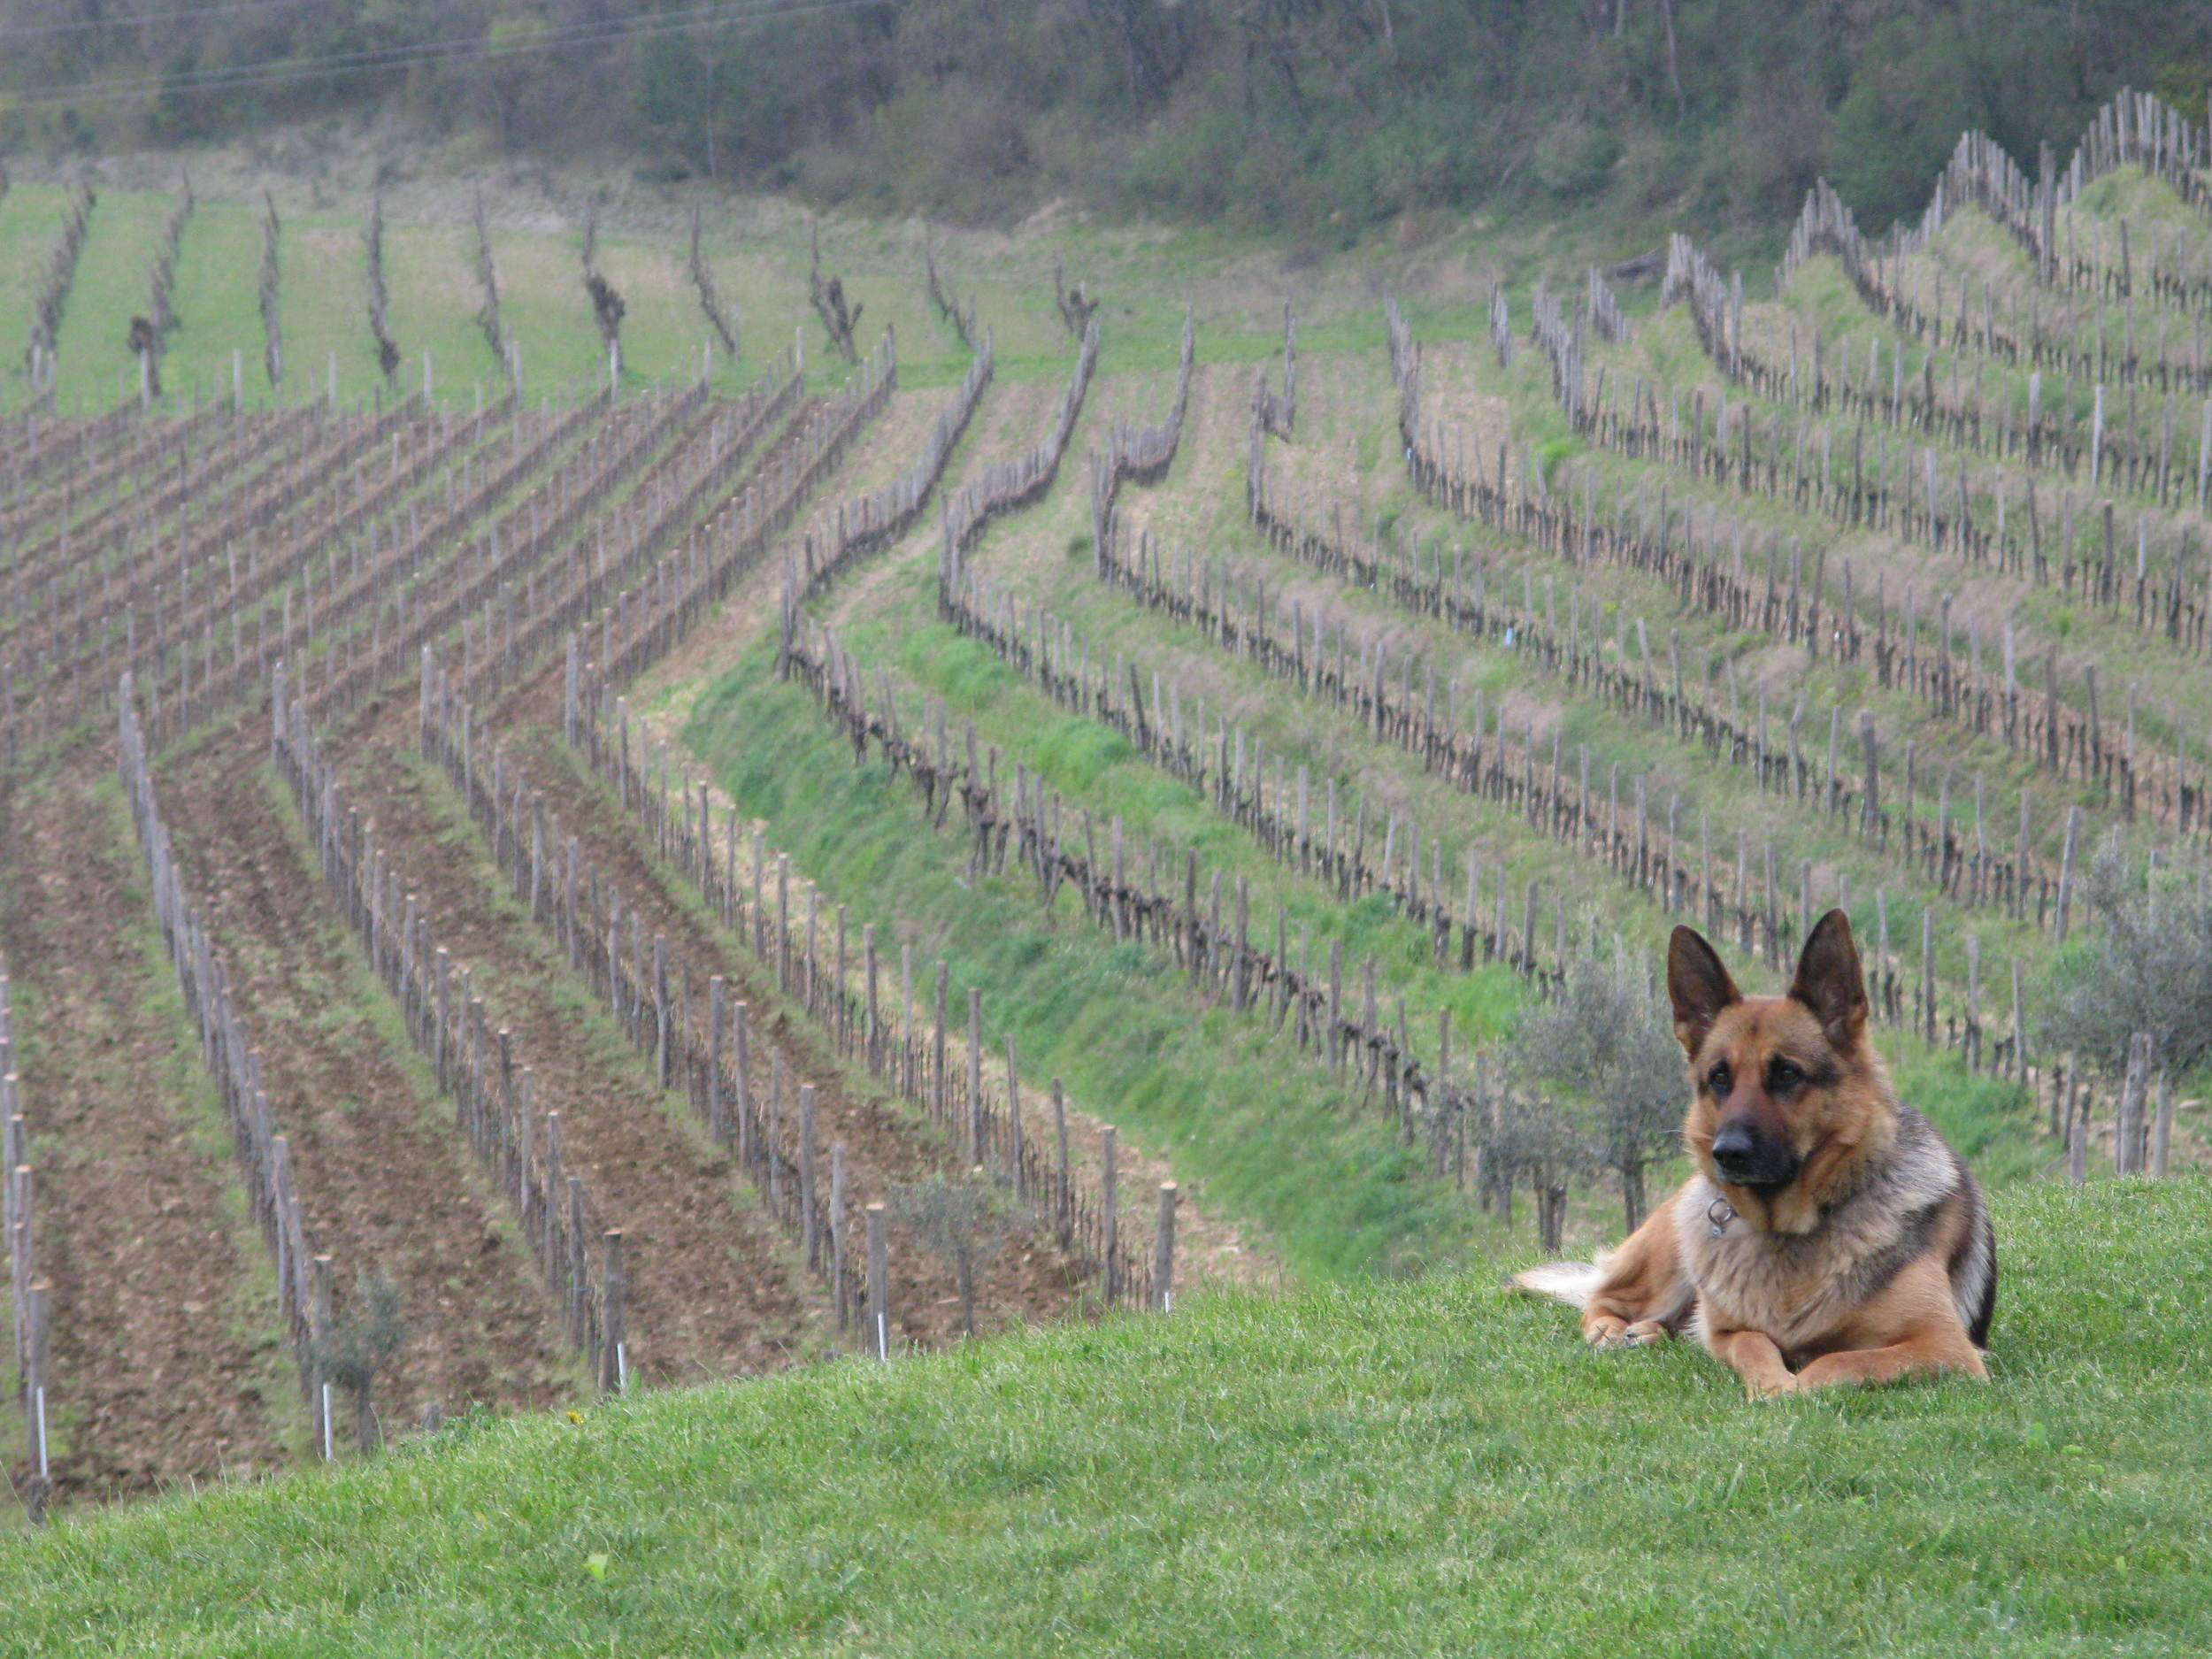 Watching over the vineyards